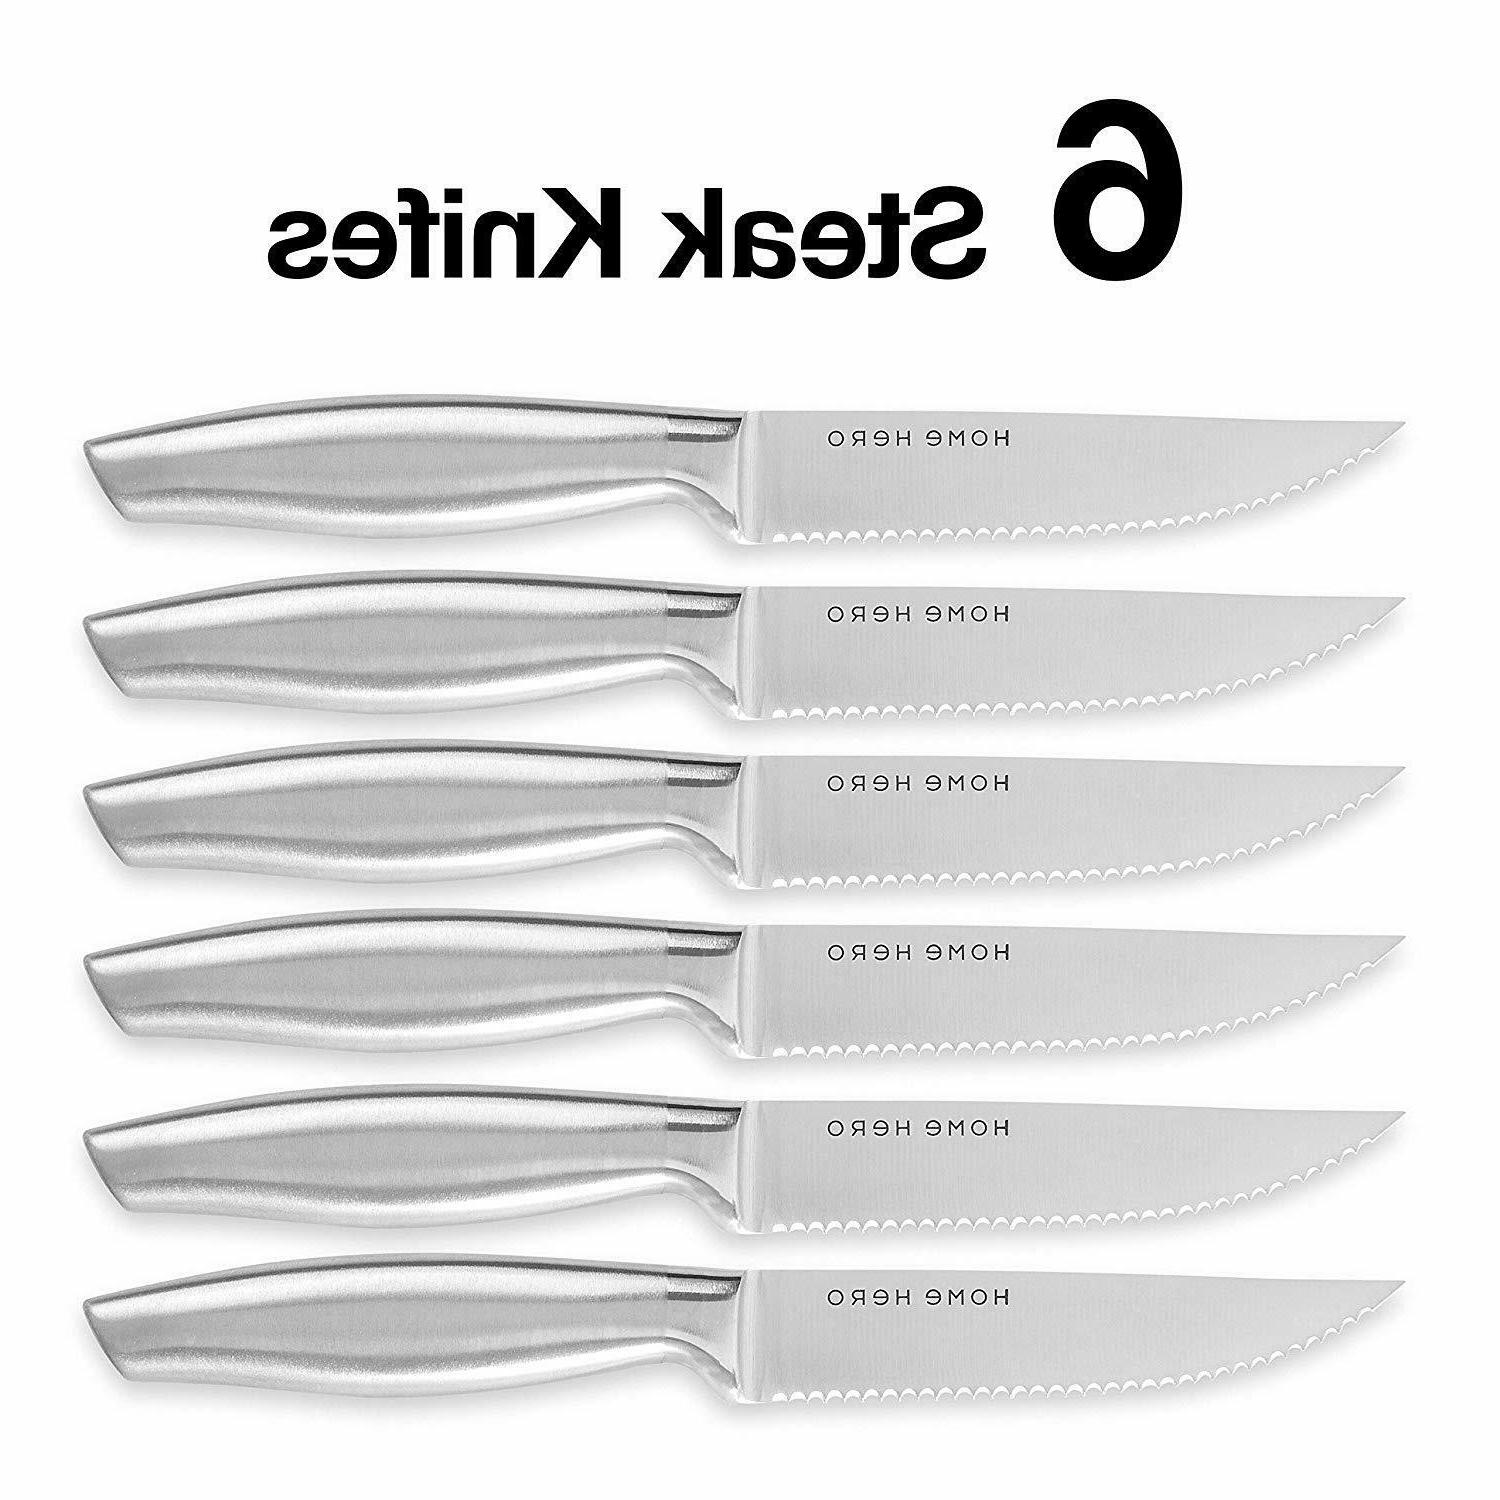 Stainless Knife Set - Kitchen Knives Chef Set